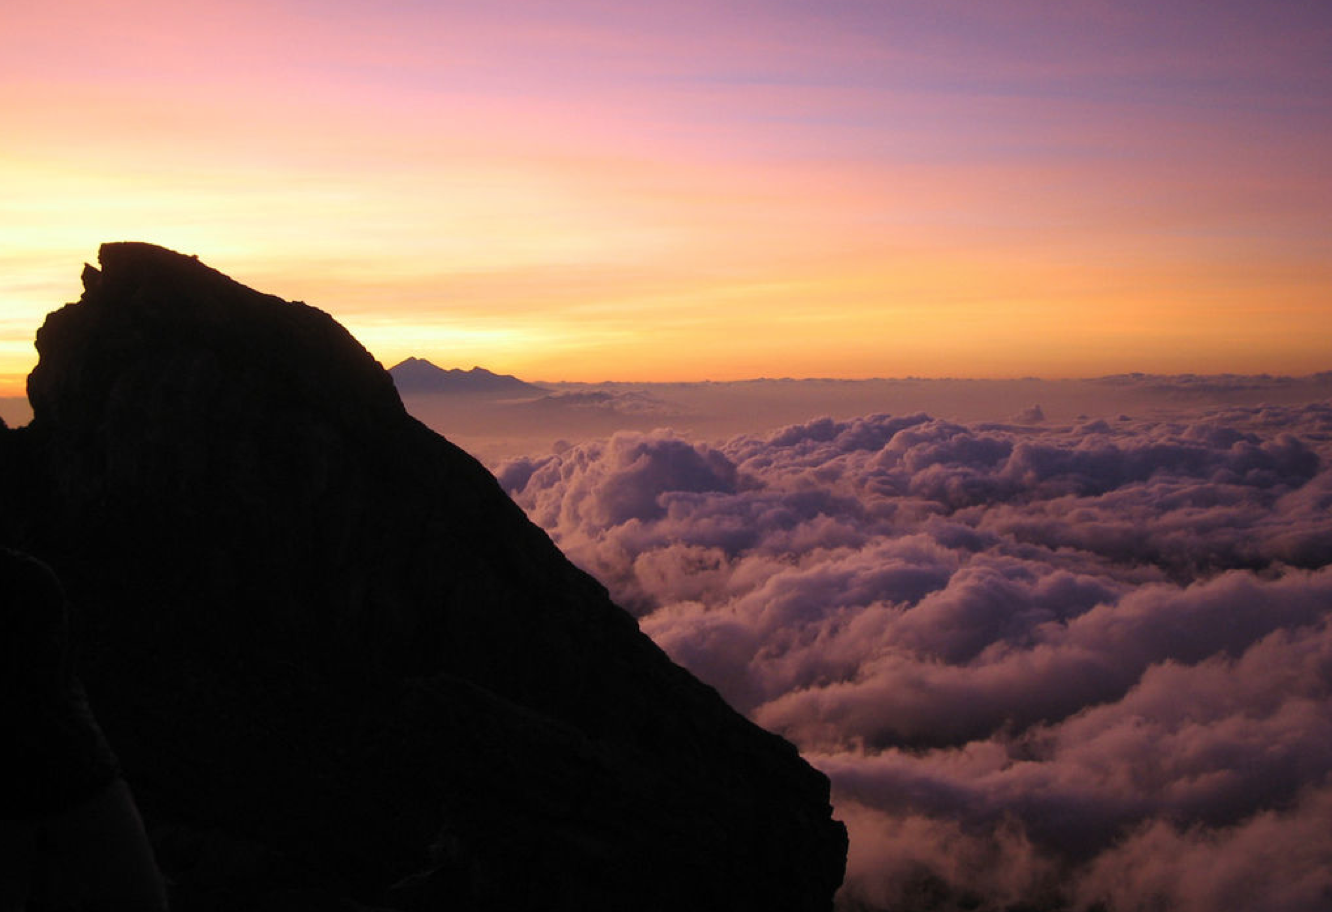 Mt Agung 3031 m med Mt Rinjani i bakgrunnen.@ Mrllmrll at English Wikipedia